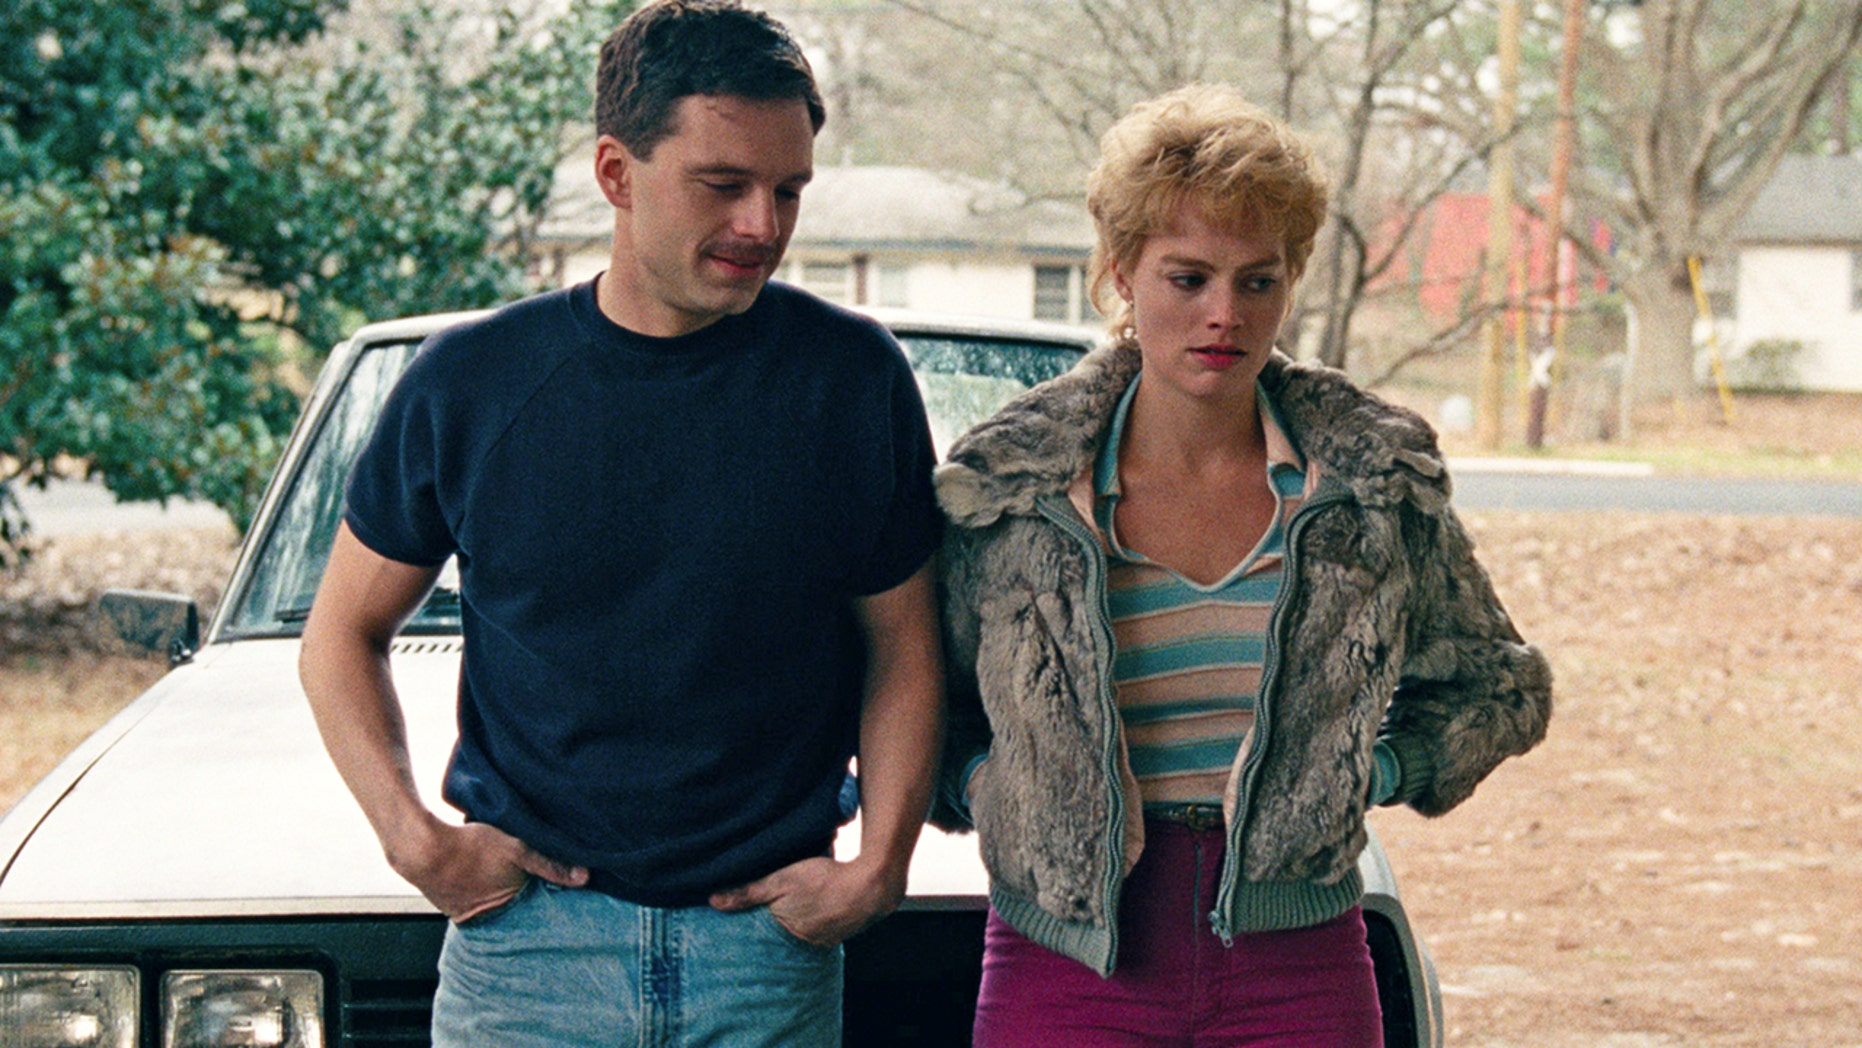 """This image released by Neon shows Sebastian Stan as Jeff Gillooly, left, and Margot Robbie as Tonya Harding in a scene from """"I, Tonya."""" On Monday, Dec. 11, 2017, Robbie was nominated for a Golden Globe for best actress in a motion picture comedy or musical for her role in the film."""